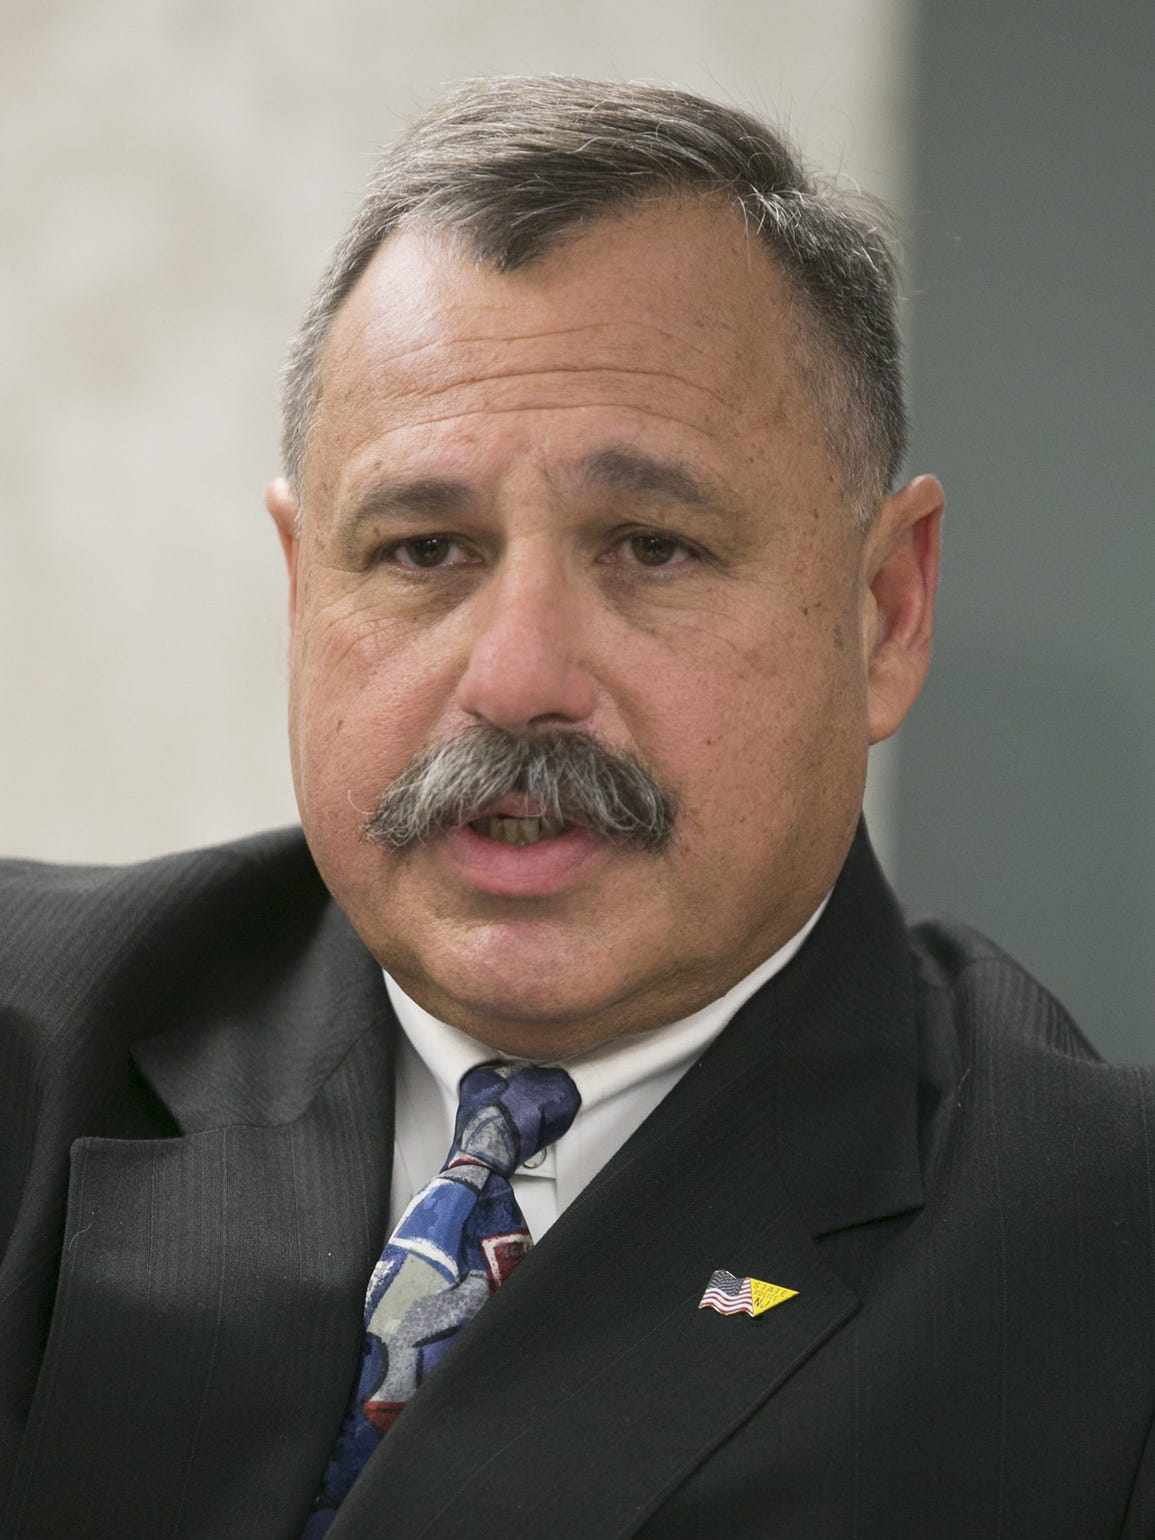 John J. Novak, a municipal court attorney, member of the Barnegat Township Committee and a former New Jersey State Trooper, supports municipal court reform.